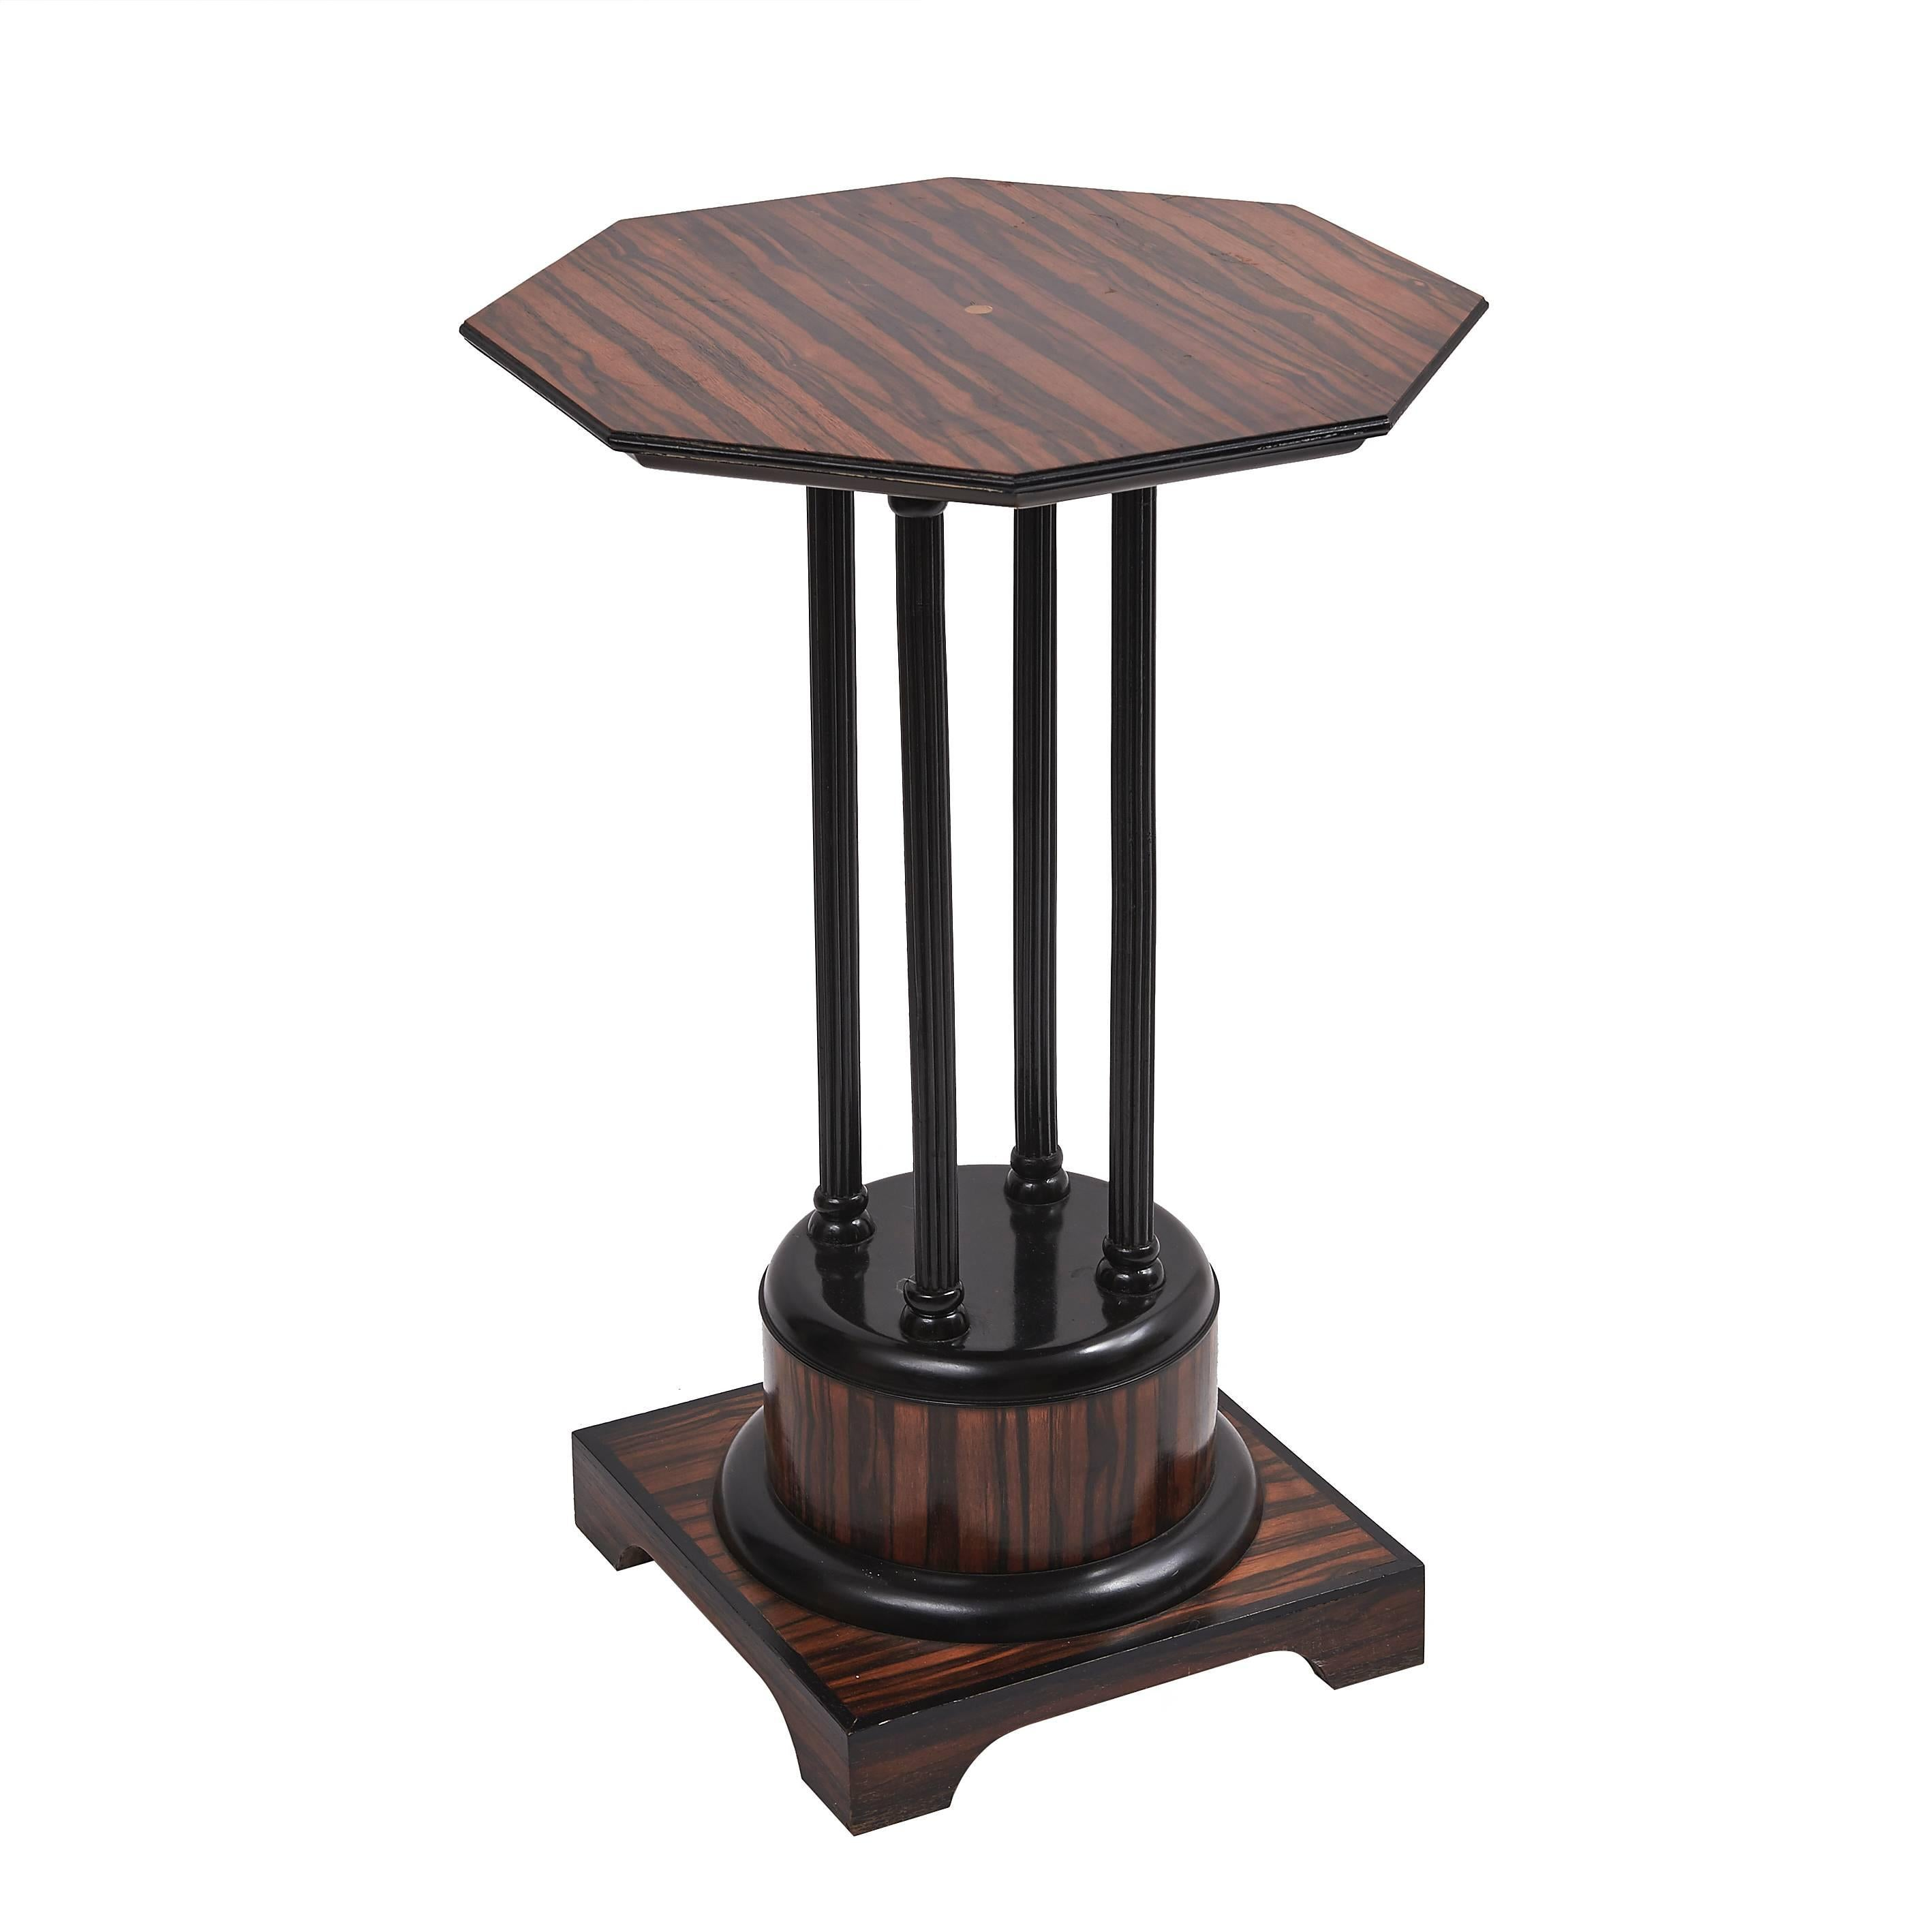 French Art Deco Macassar Occasional Table, circa 1930